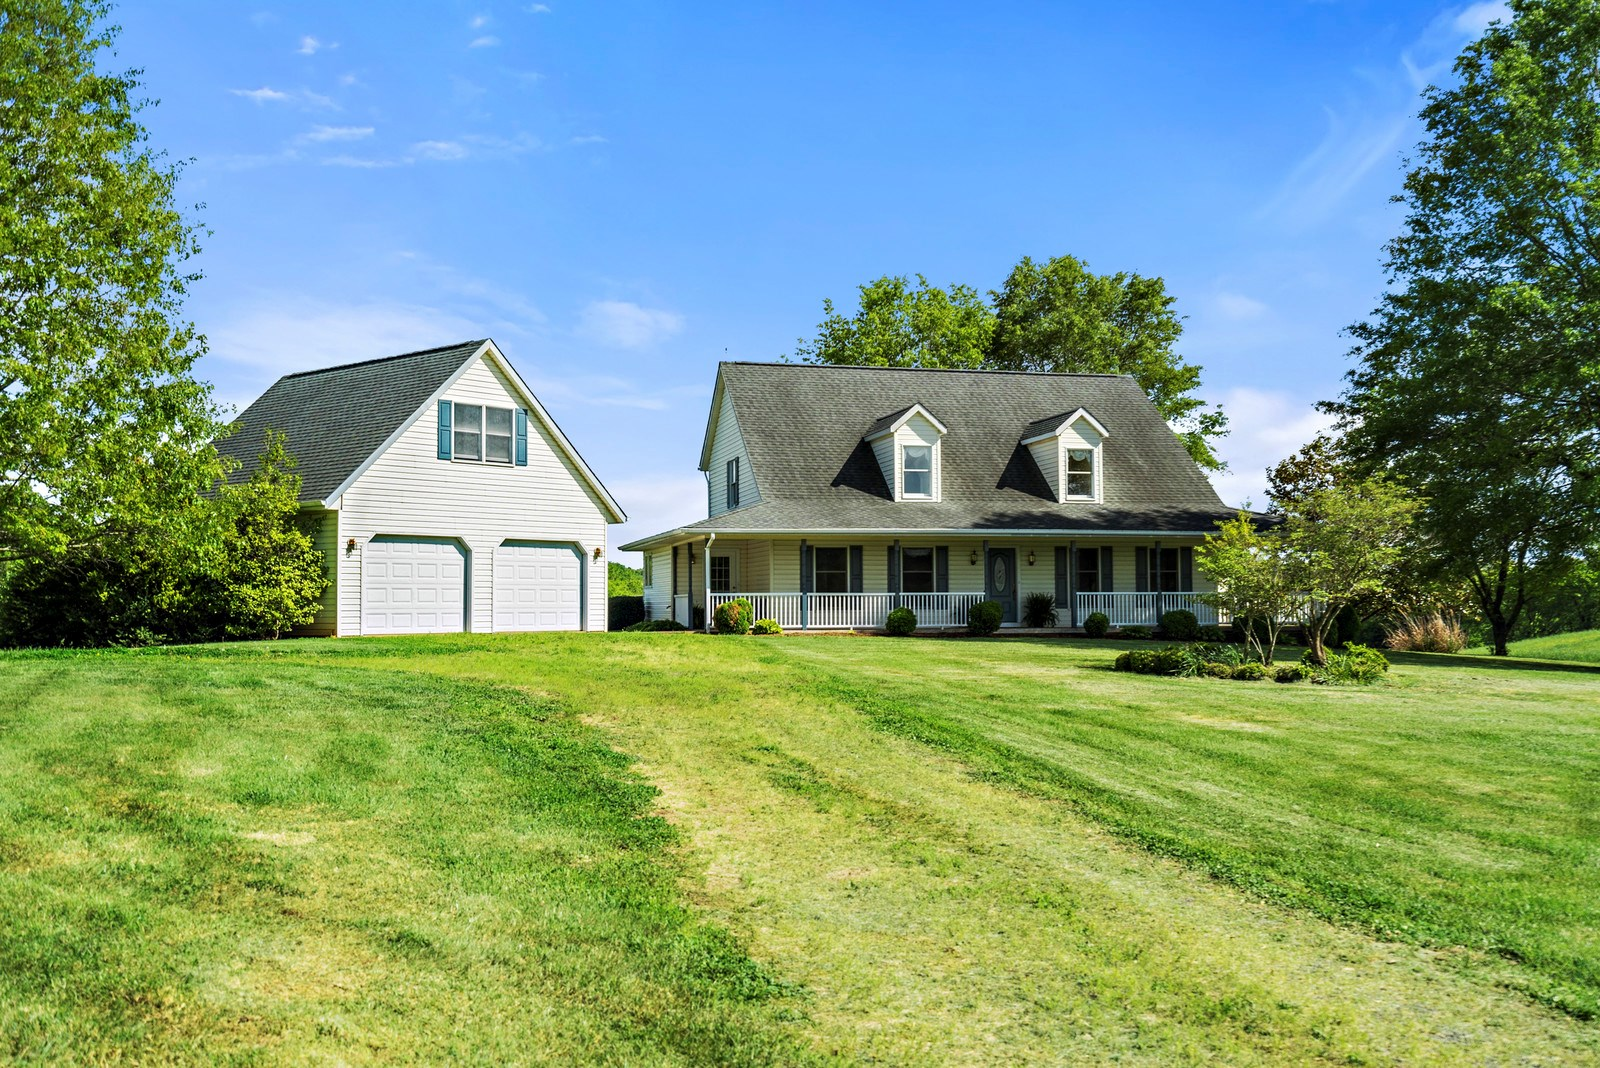 Country Home For Sale In Fauquier County VA